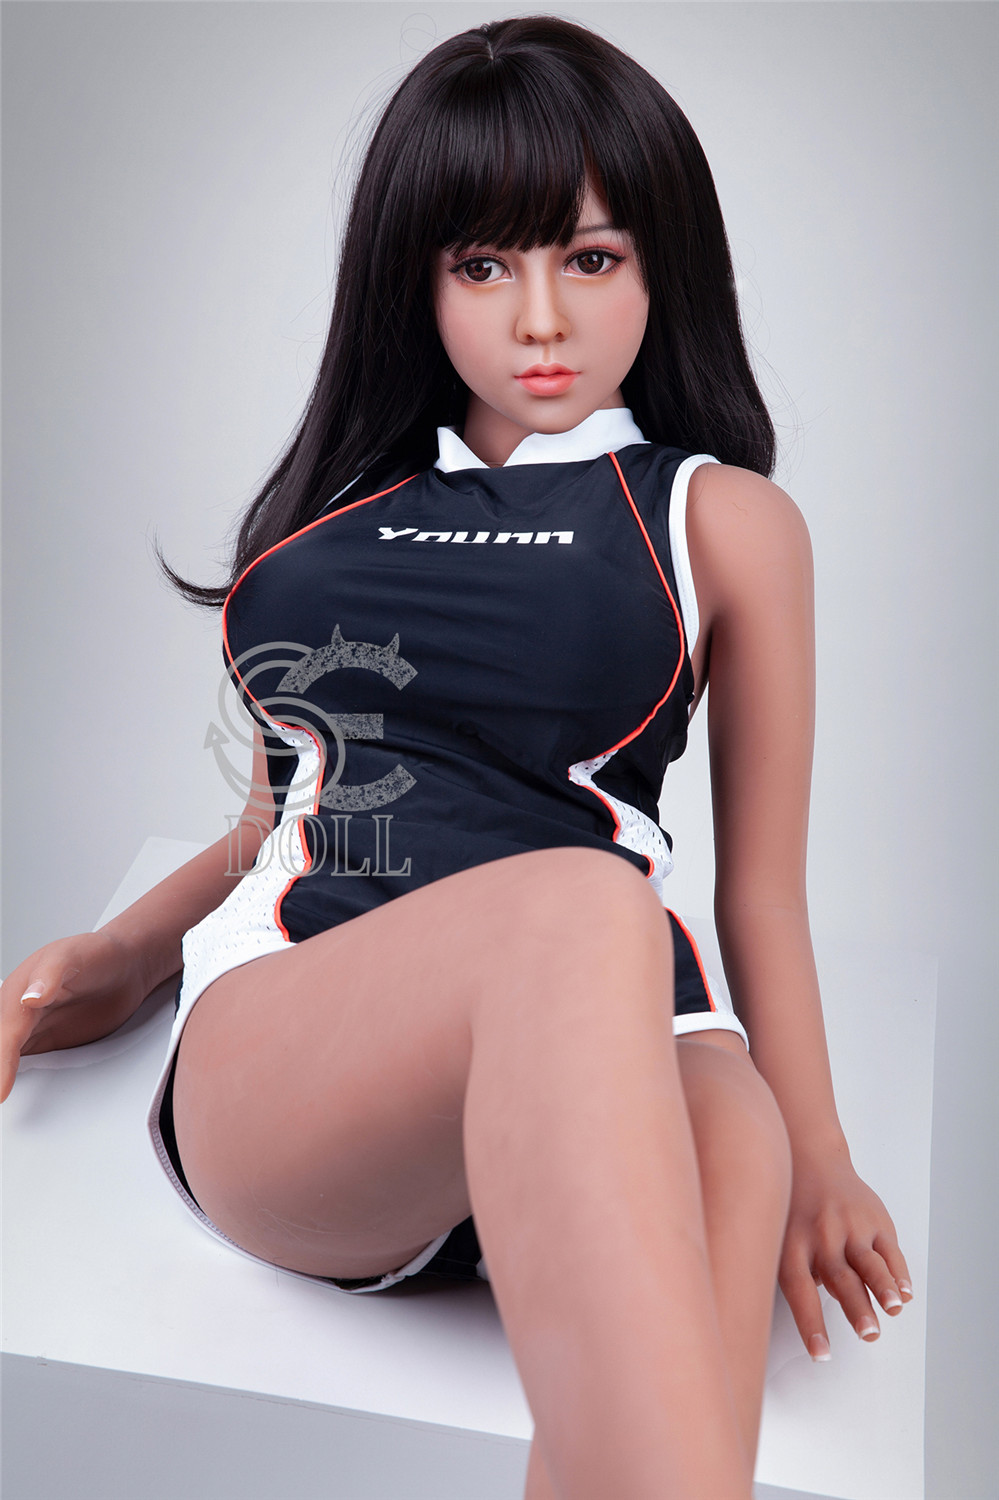 SE Doll TPE Material Love Doll 150cm/4ft9 E-cup with #63 Head